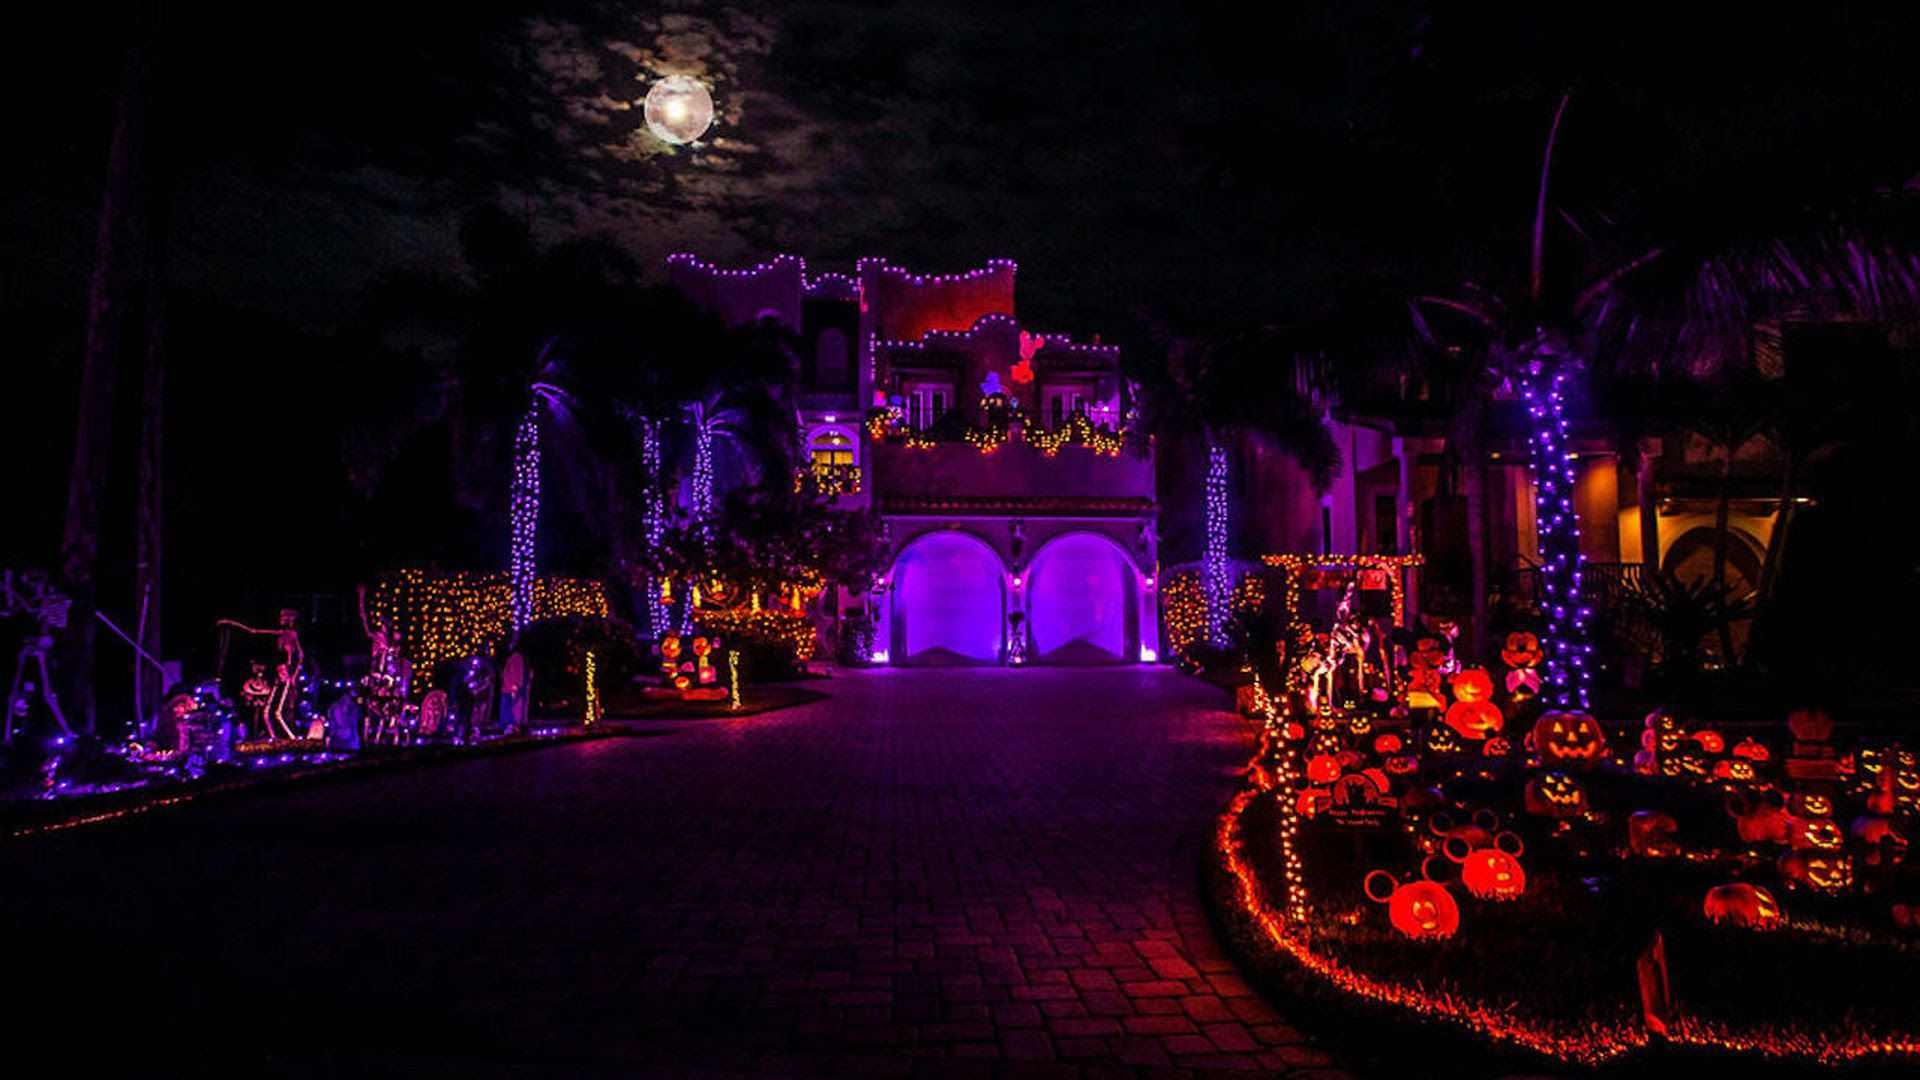 Peter Schorch's Halloween display at his St. Pete home, with red and purple lights everywhere.